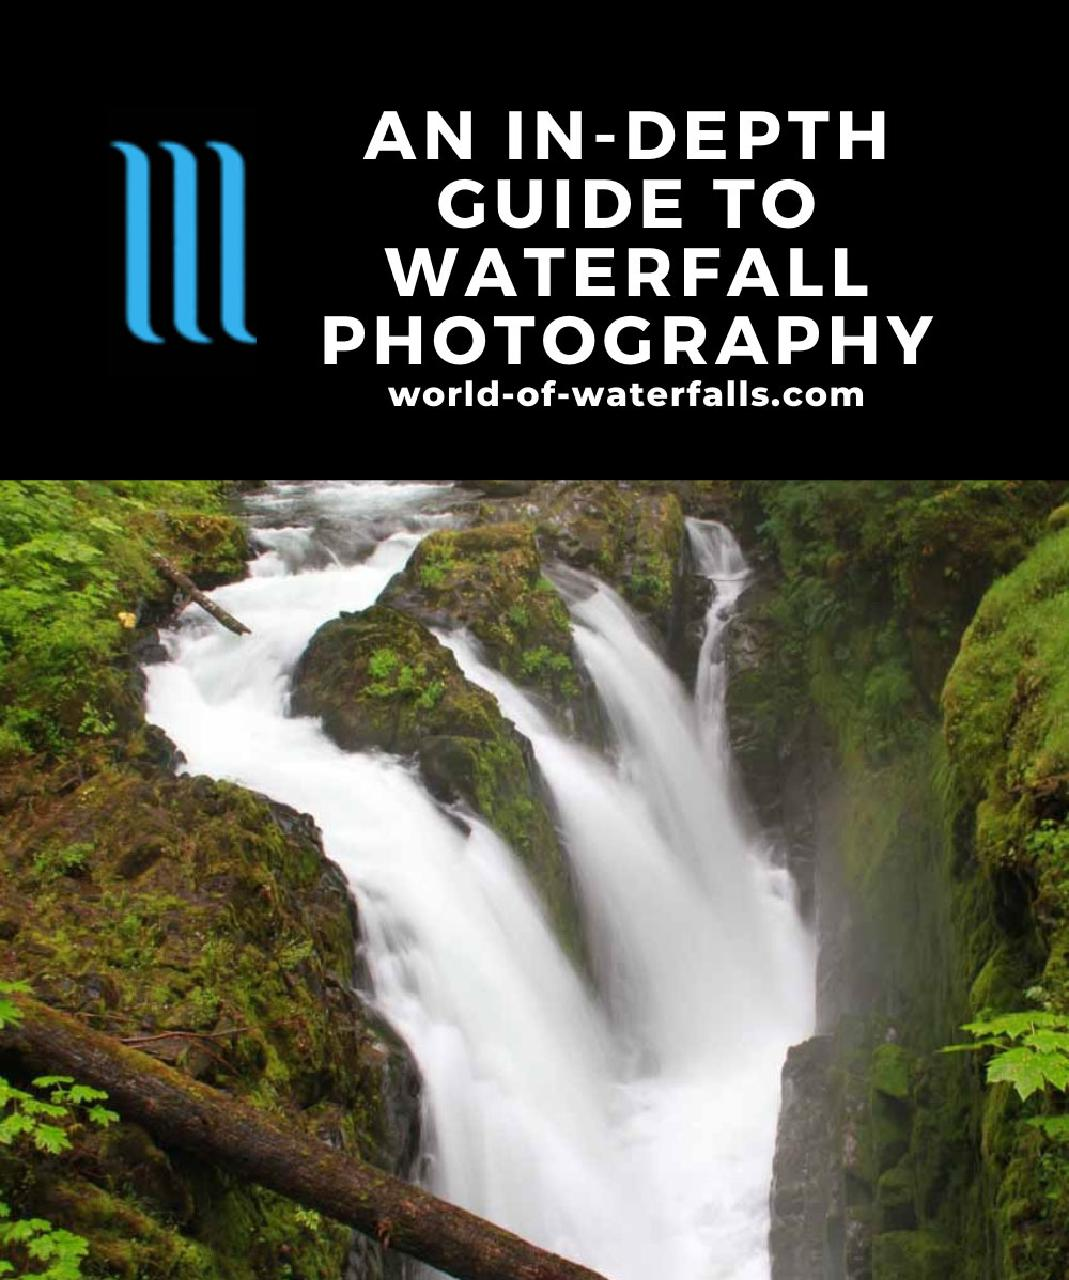 Employing waterfall photography at Sol Duc Falls, which was an ideal candiate for making it look silky while also bringing out the surrounding greens